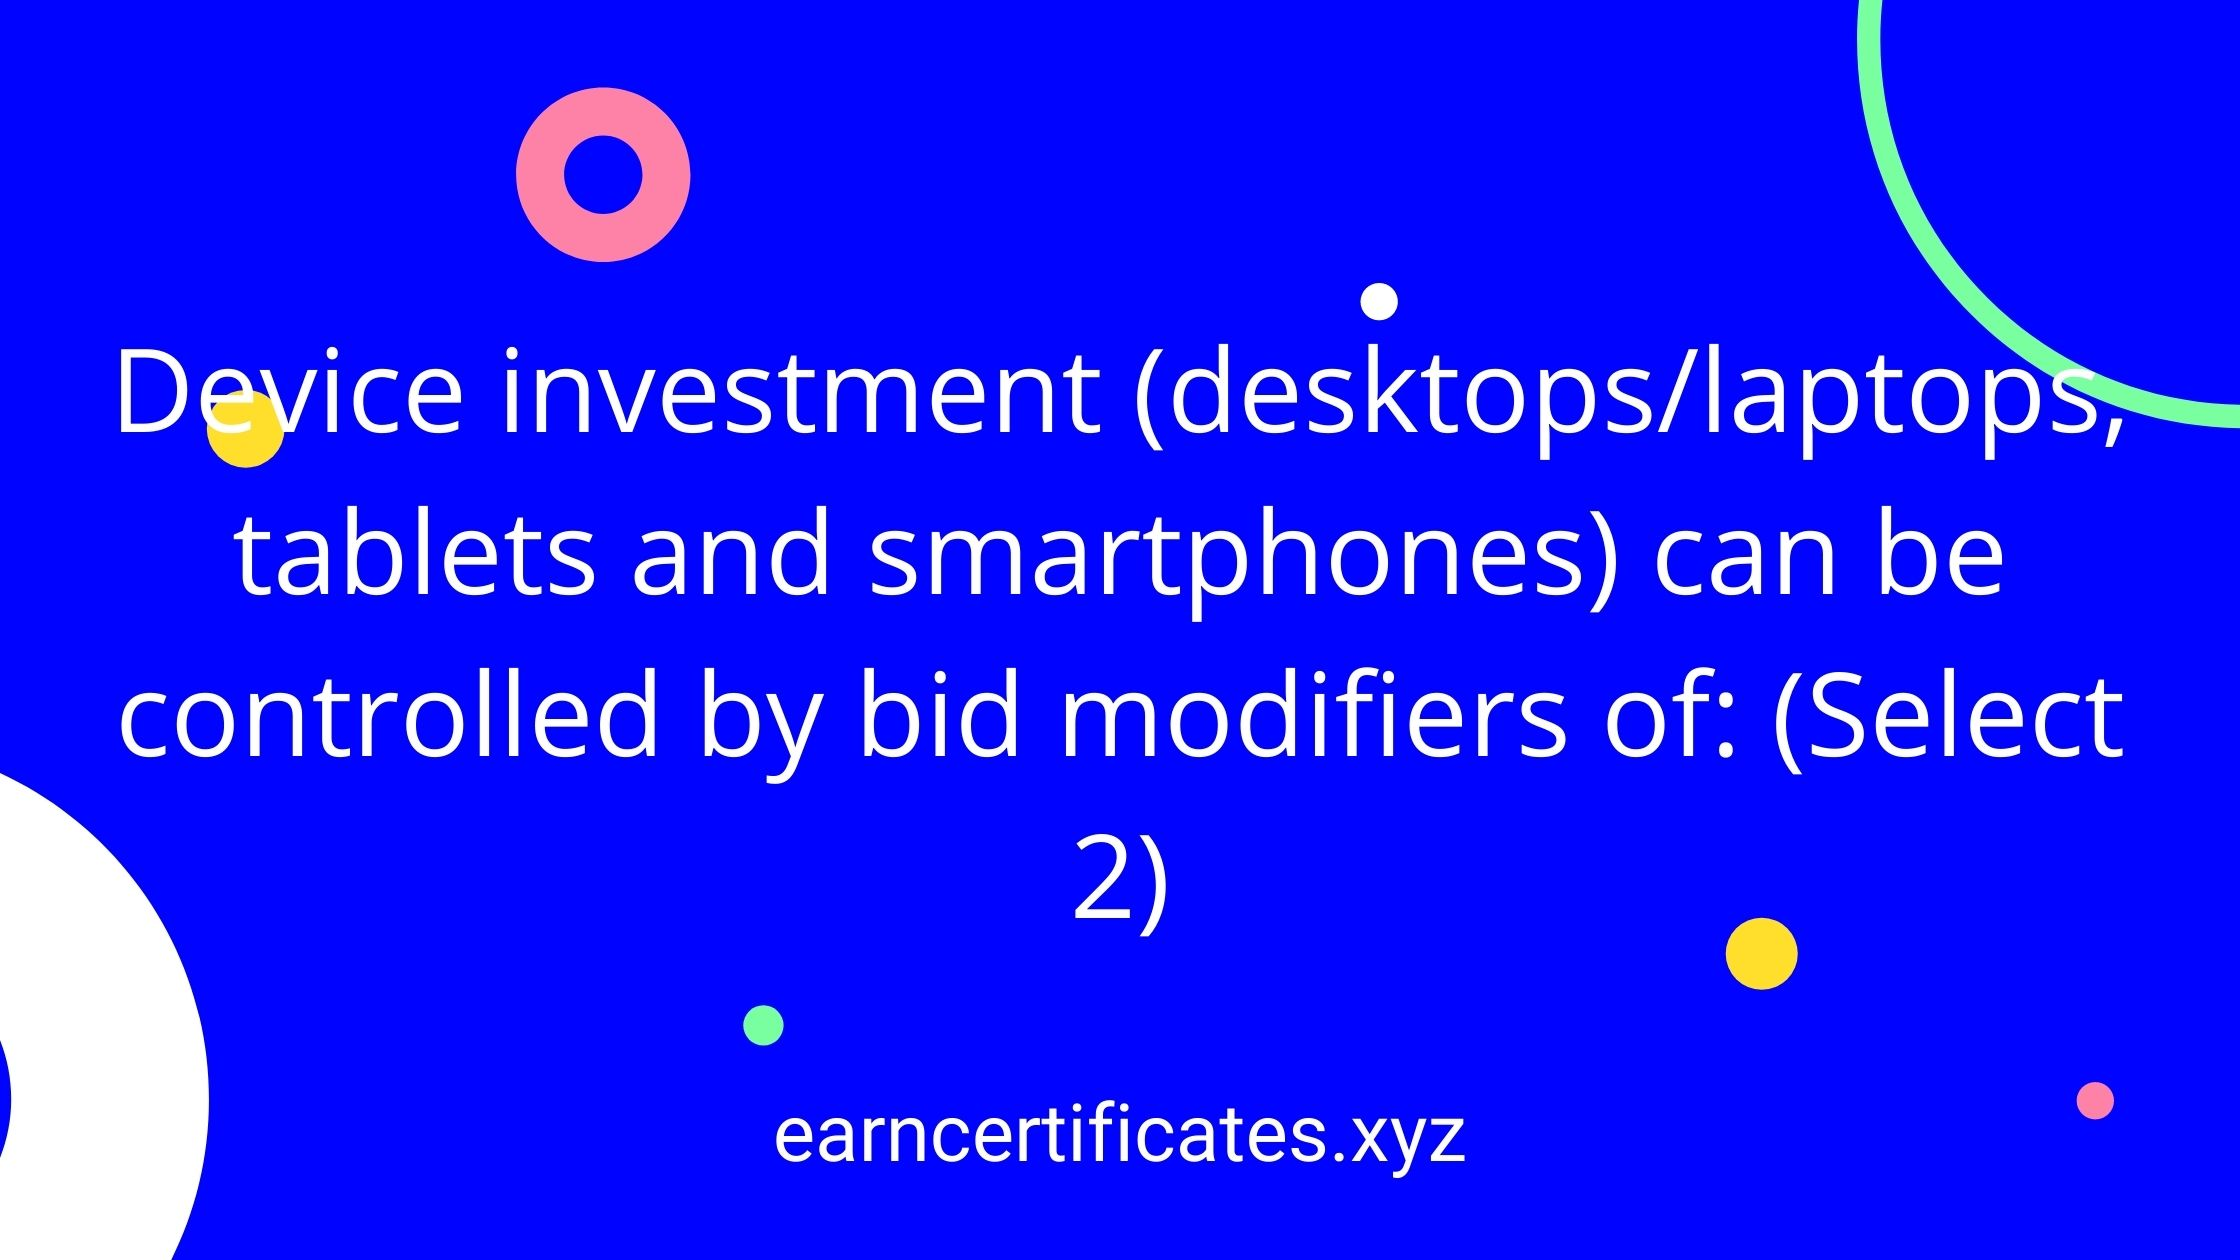 Device investment (desktops/laptops, tablets and smartphones) can be controlled by bid modifiers of: (Select 2)